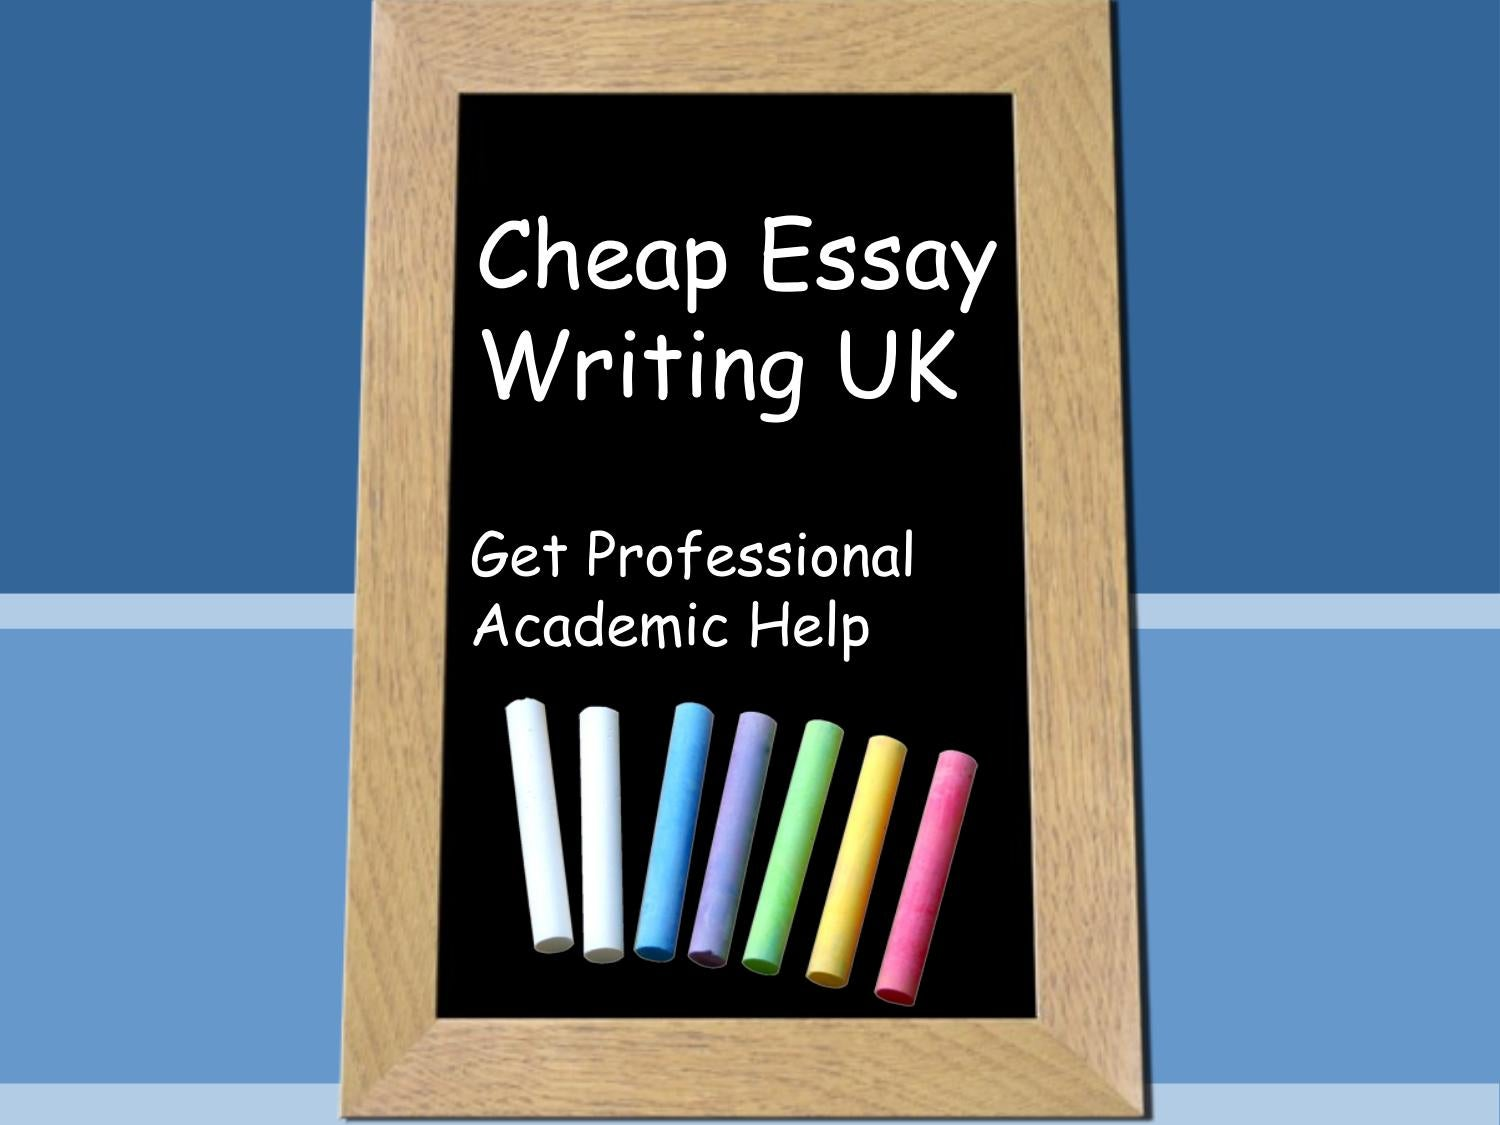 seap essays I was rejected by seap i thought i would share my essays here, and see if you guys could help me realize what i did wrong i'll be applying for other internships so i wouldn't want to repeat that mistake.